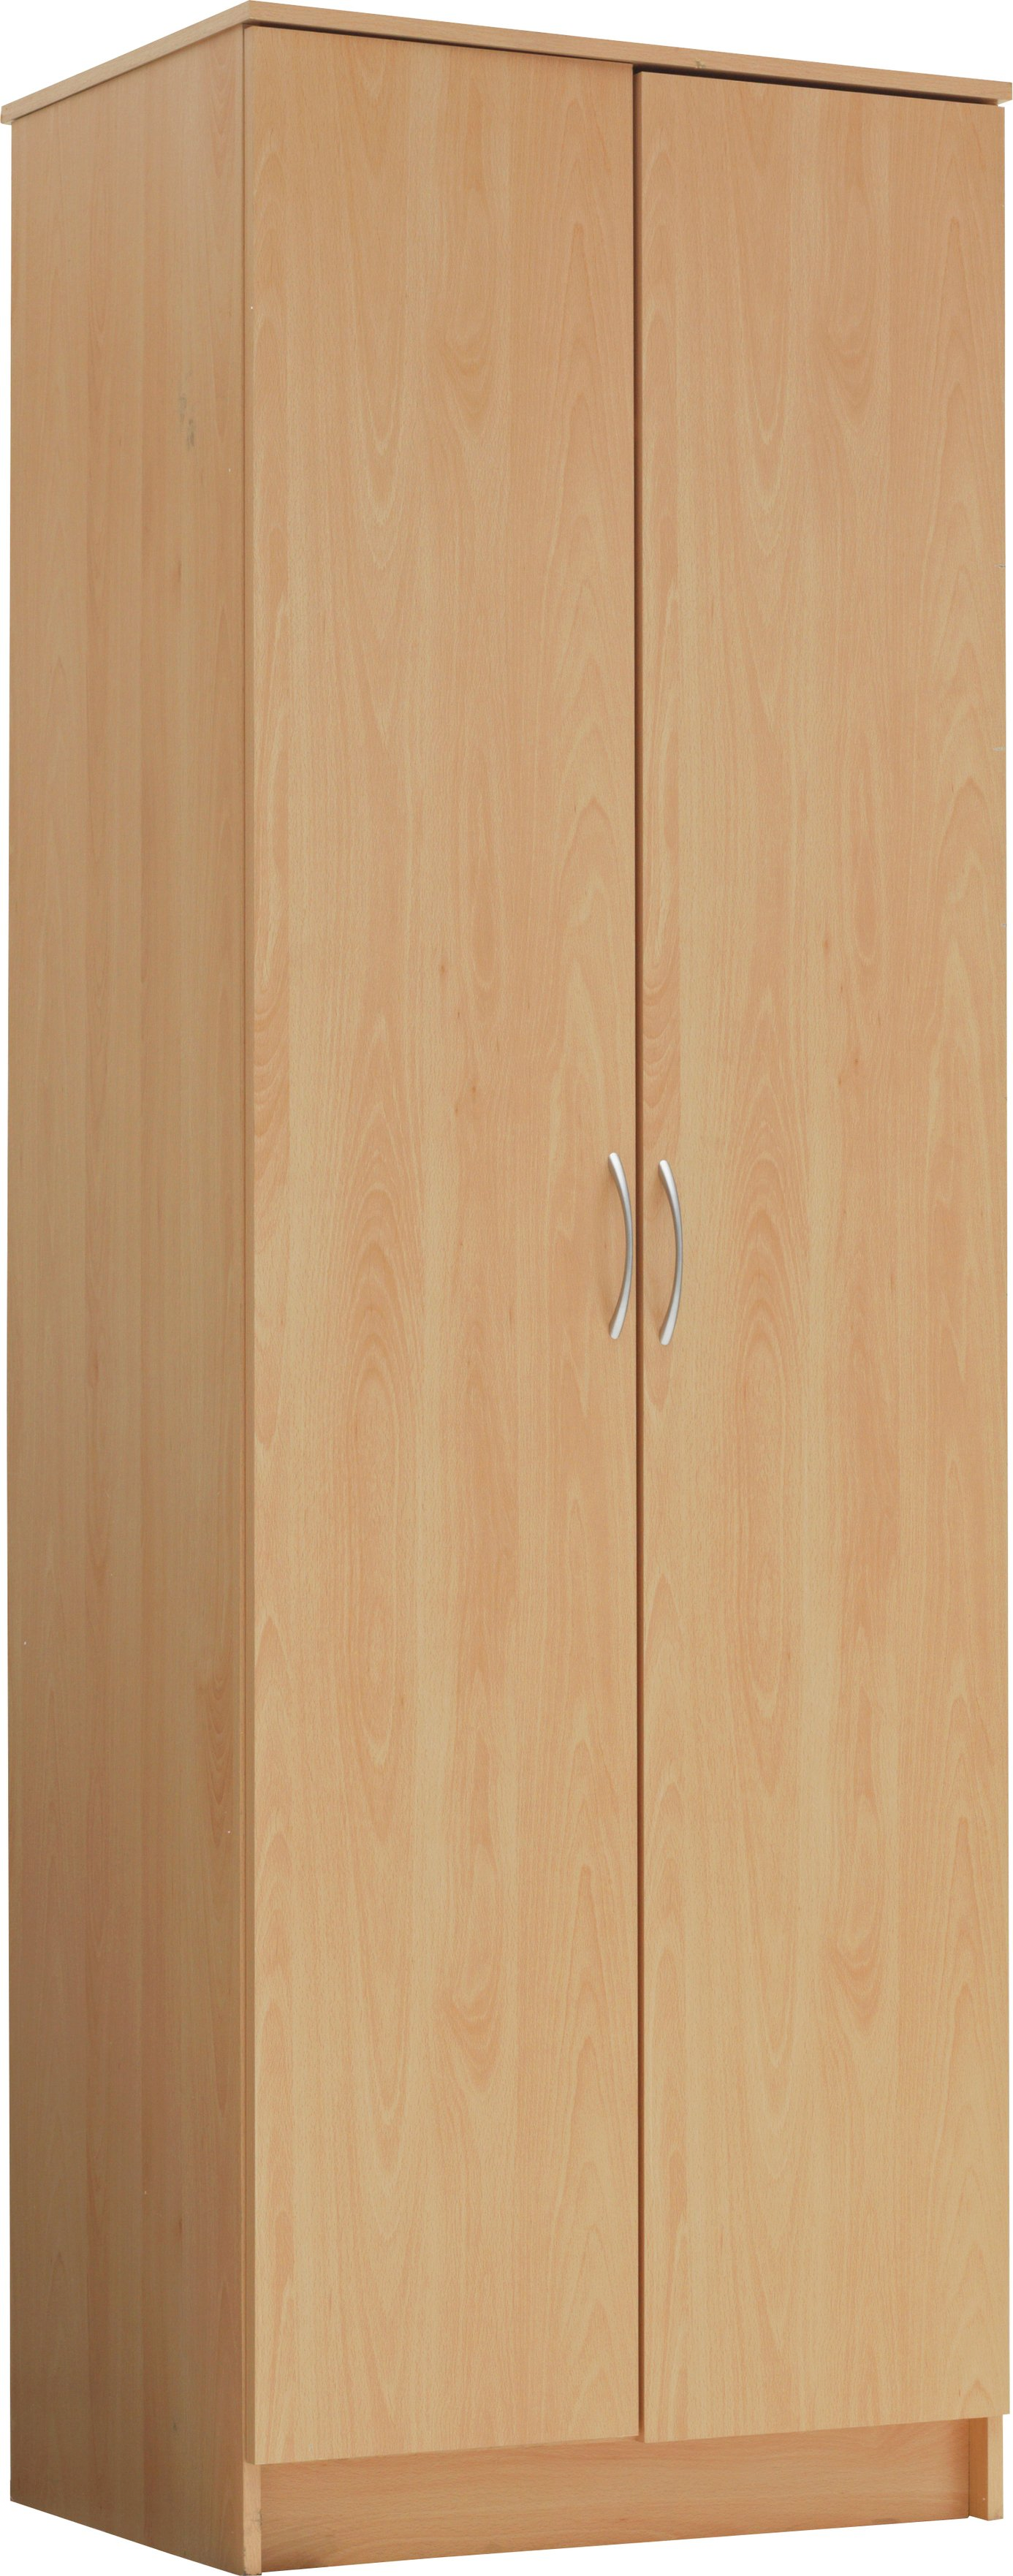 Argos Home Cheval 2 Door Wardrobe